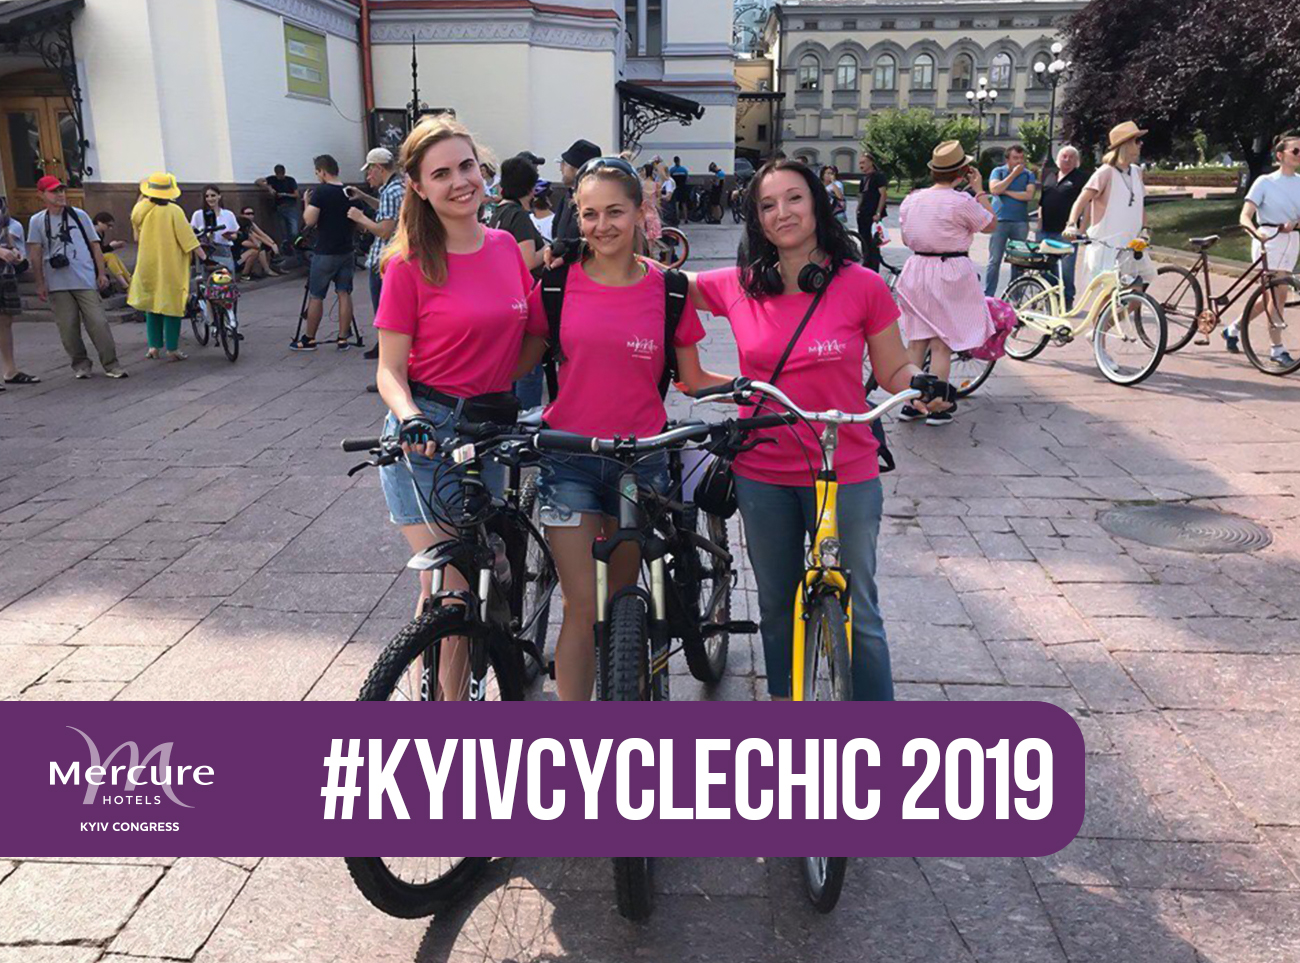 Ladies' team of Mercure Kyiv Congress took part in Kyiv Cycle Chic